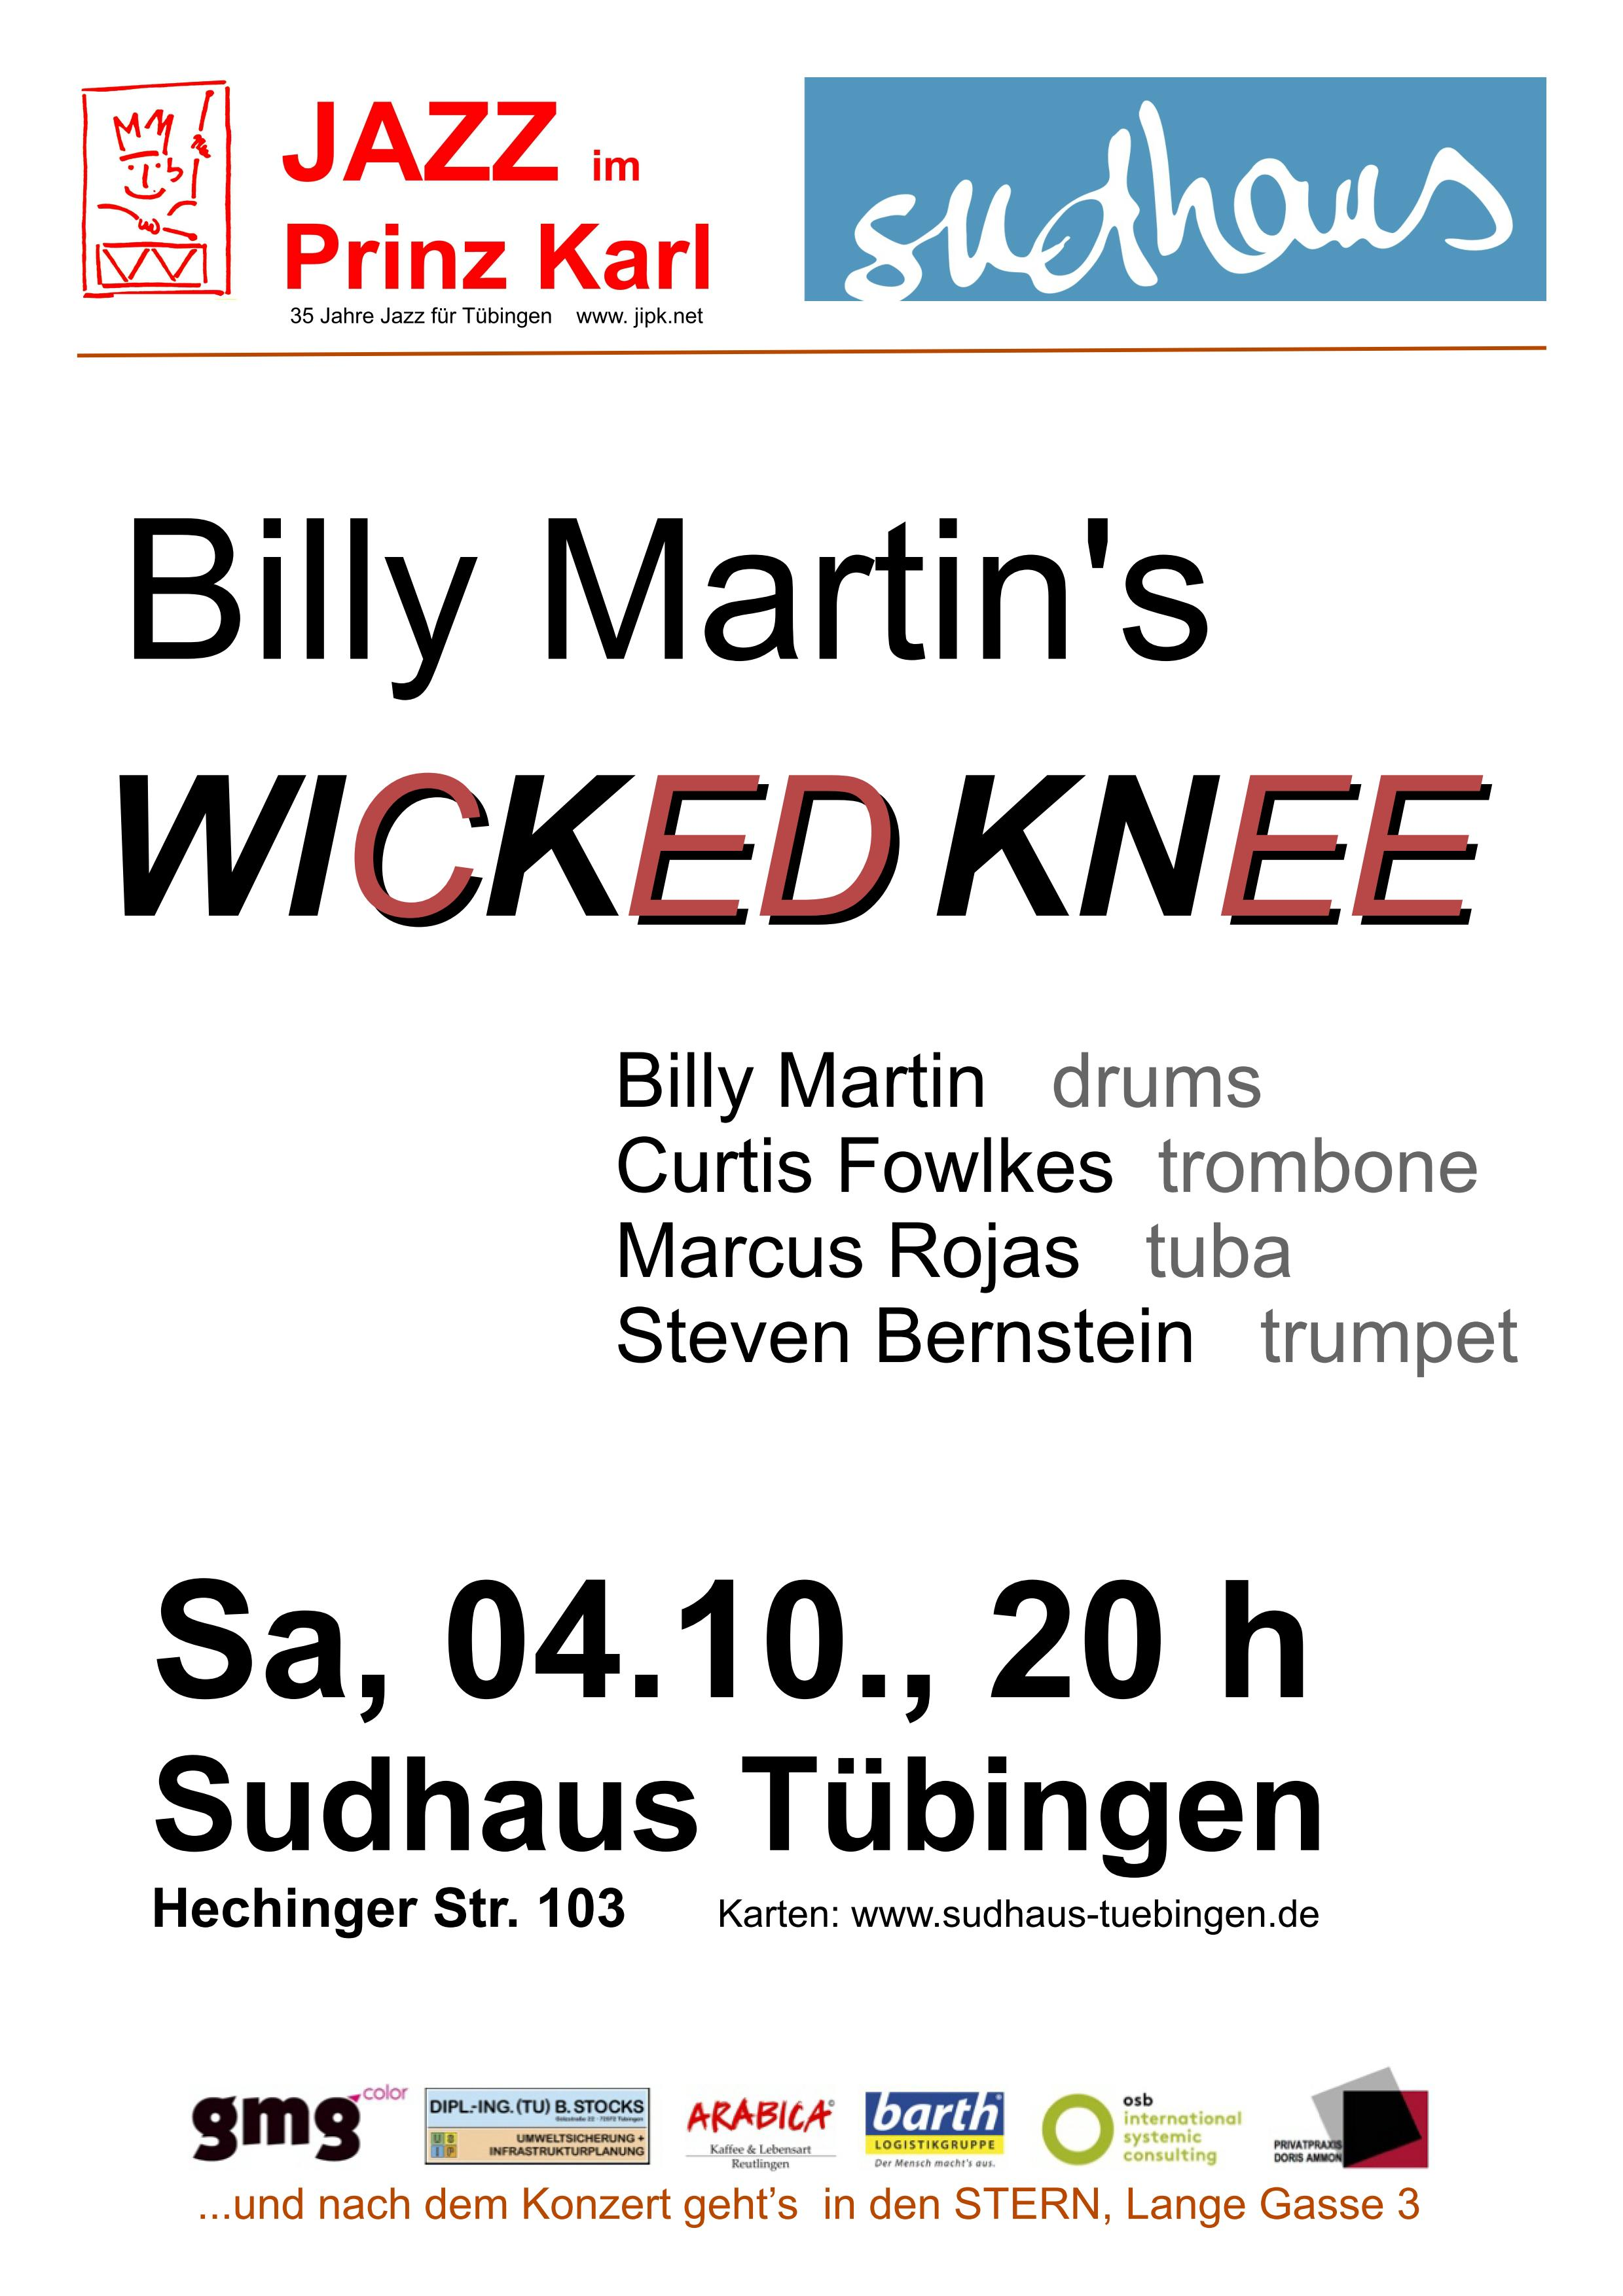 Jazz Konzert mit Billy Martins Wicked Knee